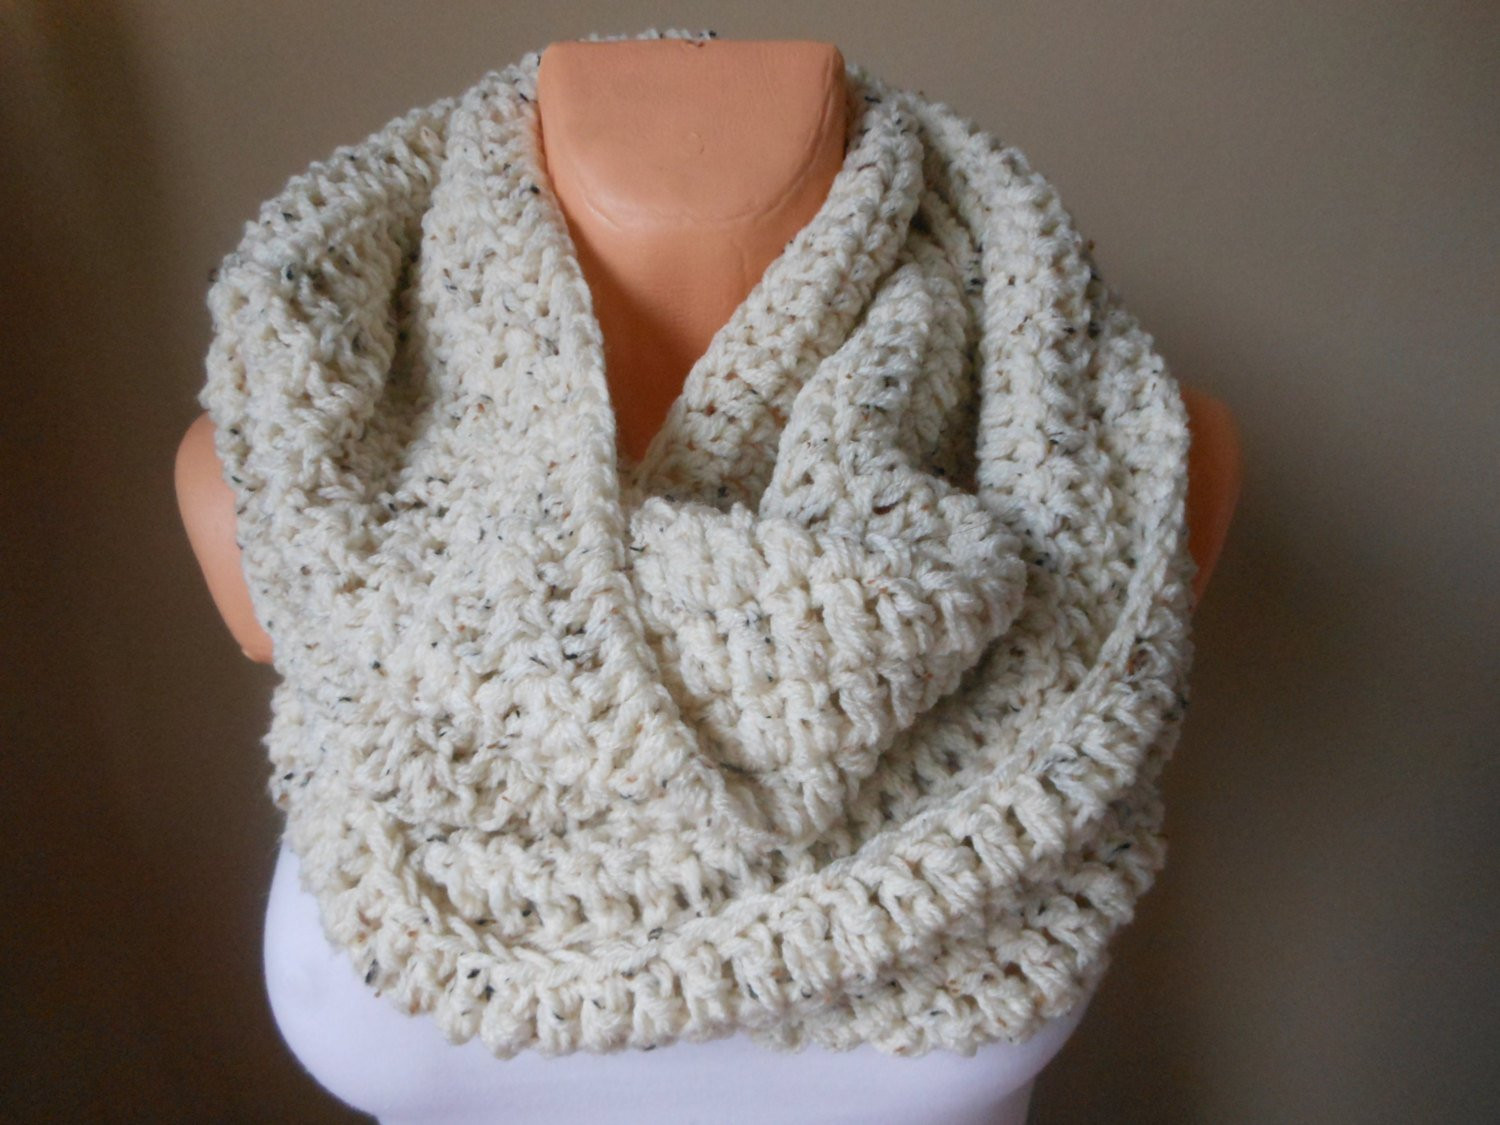 Crochet Neck Scarf Best Of Crochet Infinity Scarf Cowl Neck Warmer Oatmeal Of Great 50 Ideas Crochet Neck Scarf